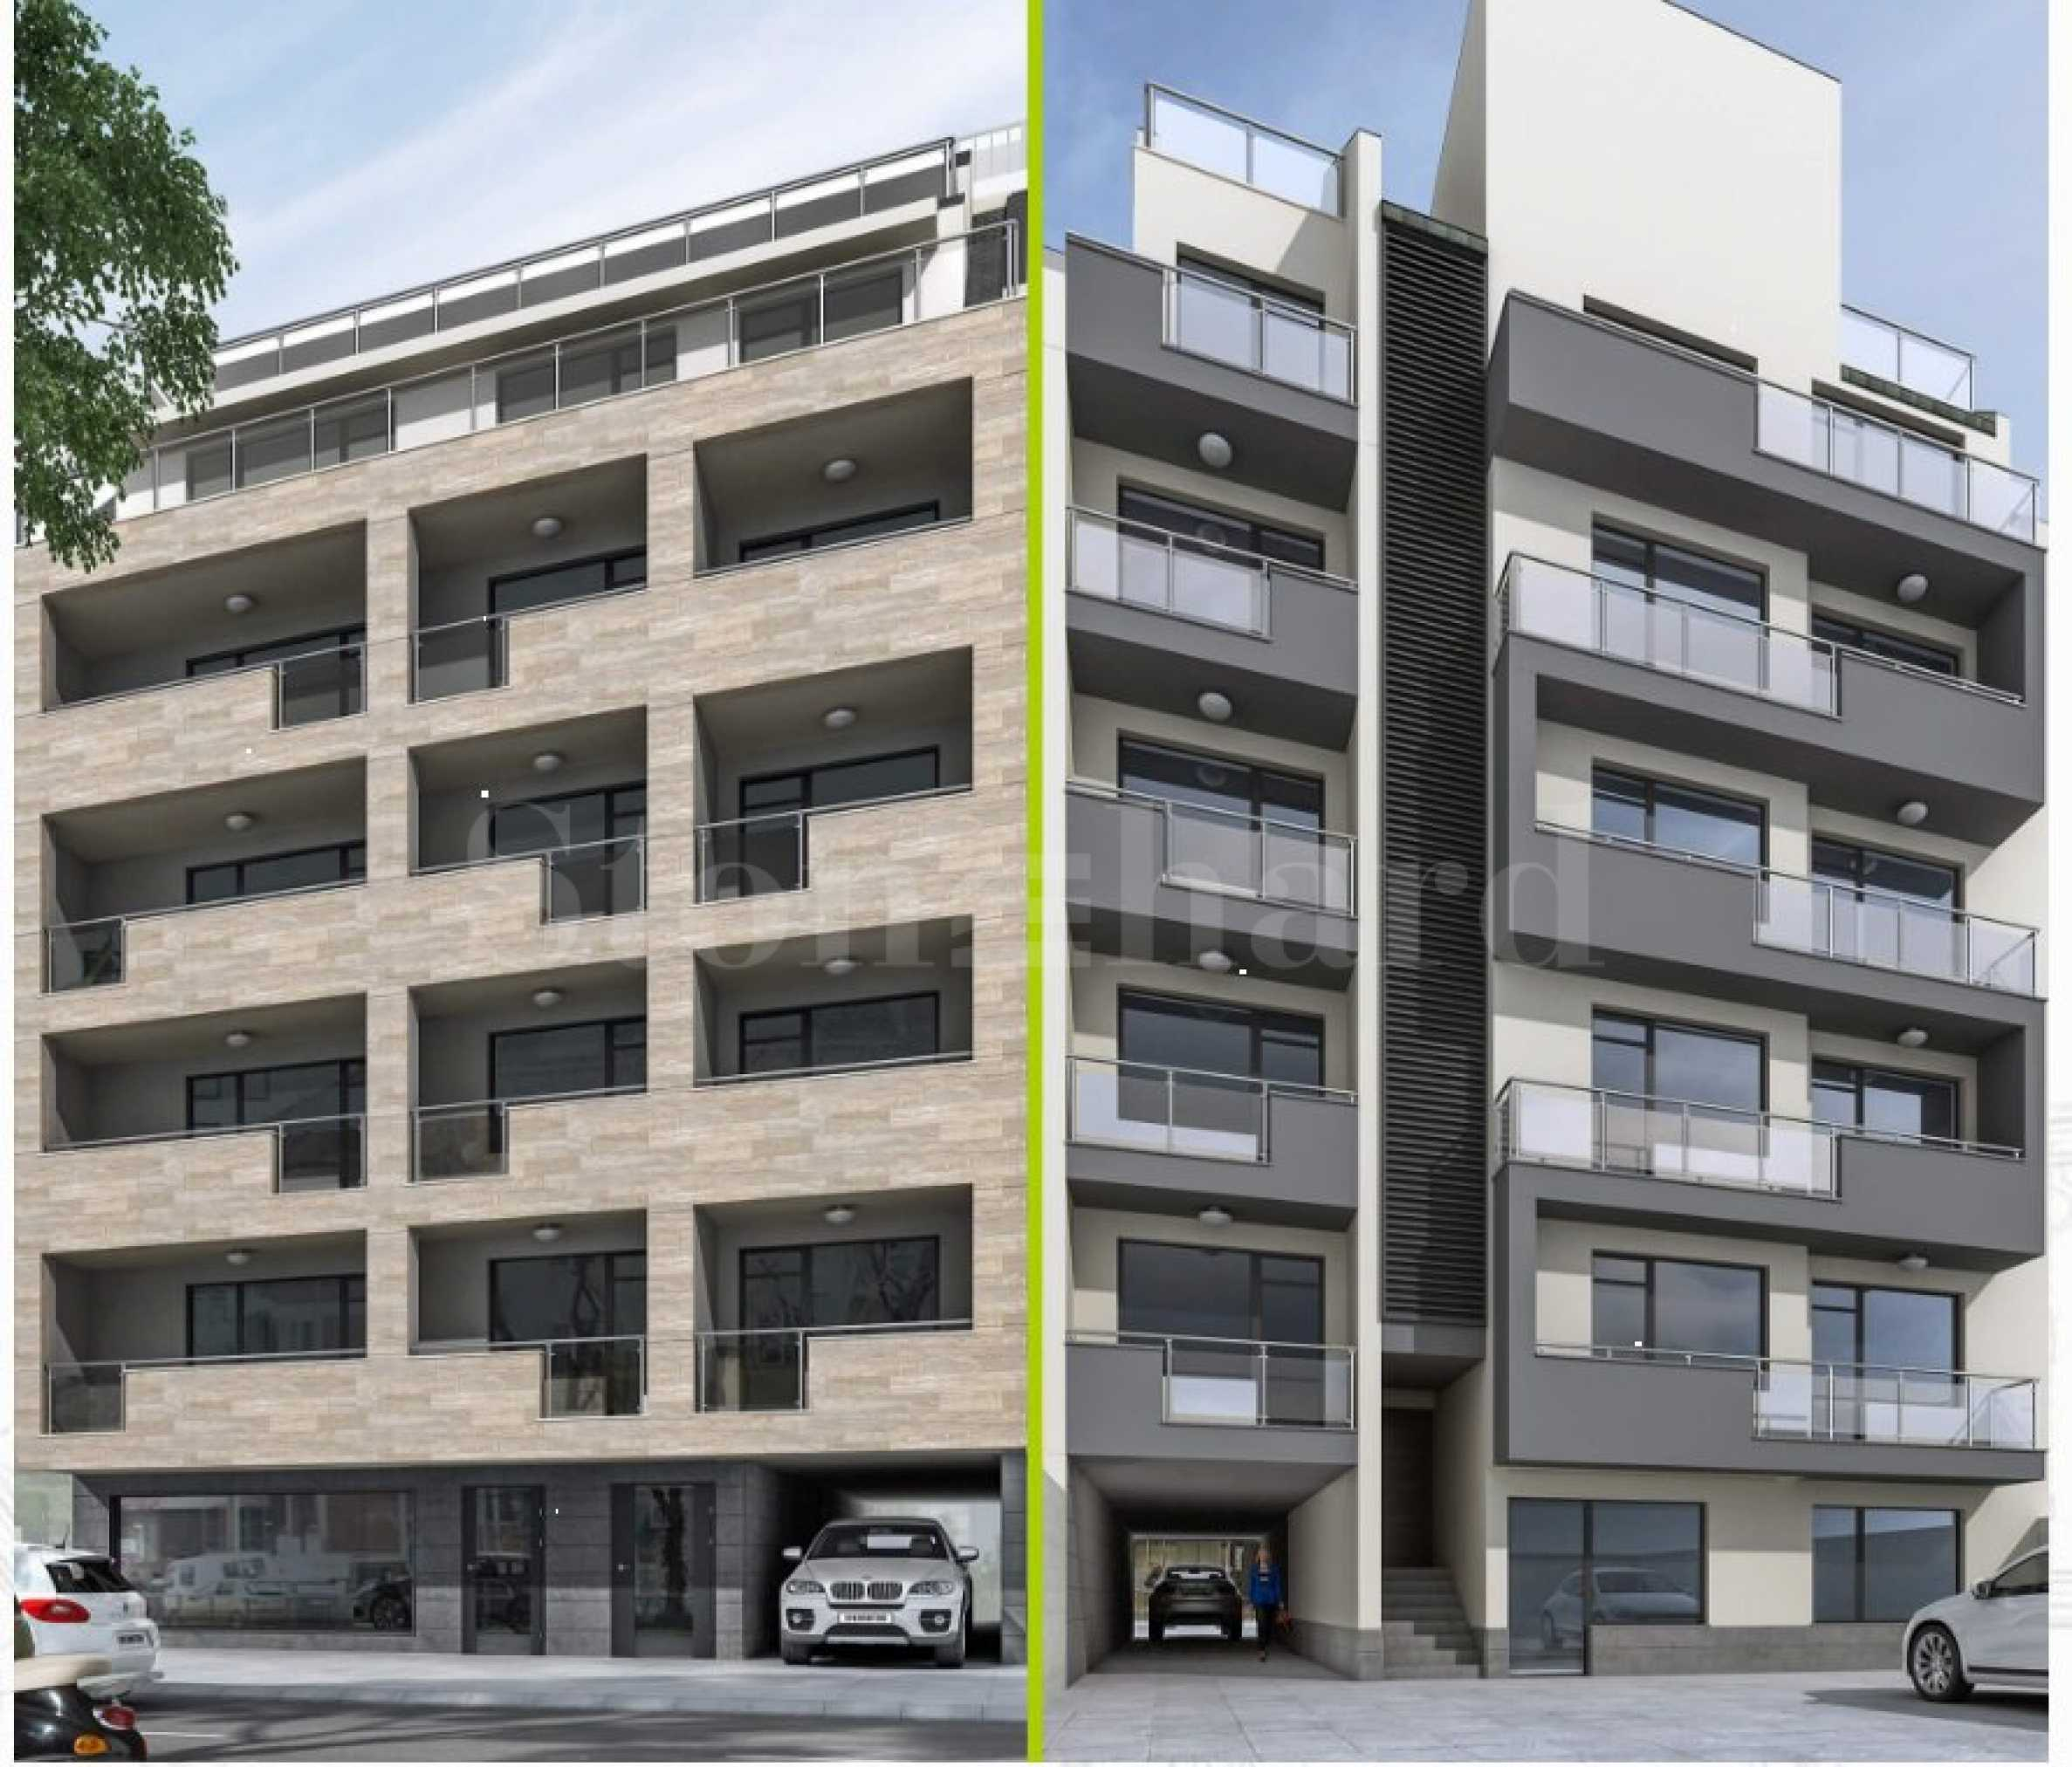 Functional apartments with garages in a preferred neighborhood1 - Stonehard